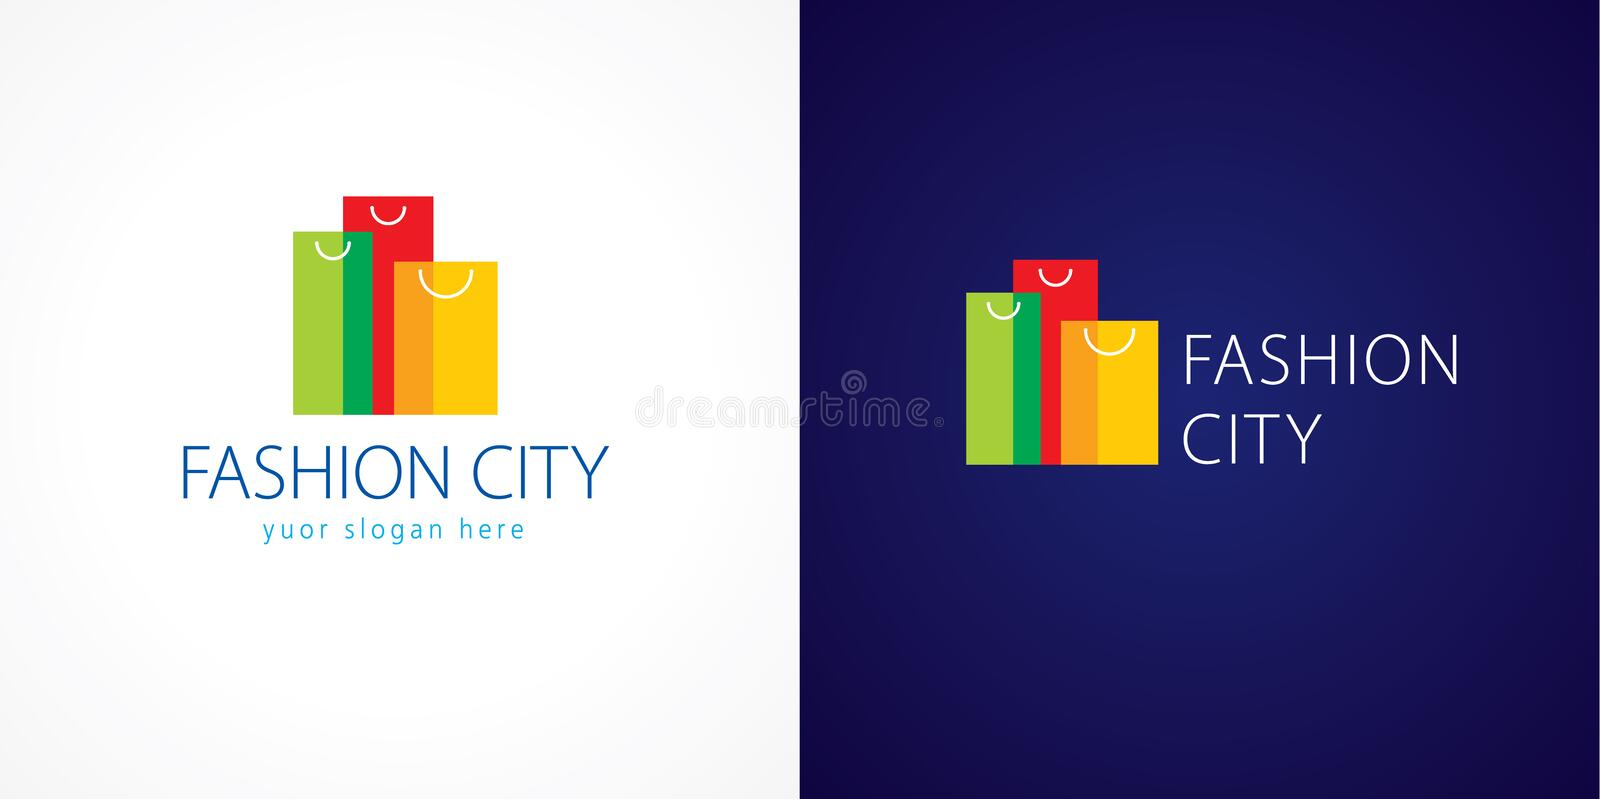 Fashion city logo. royalty free illustration